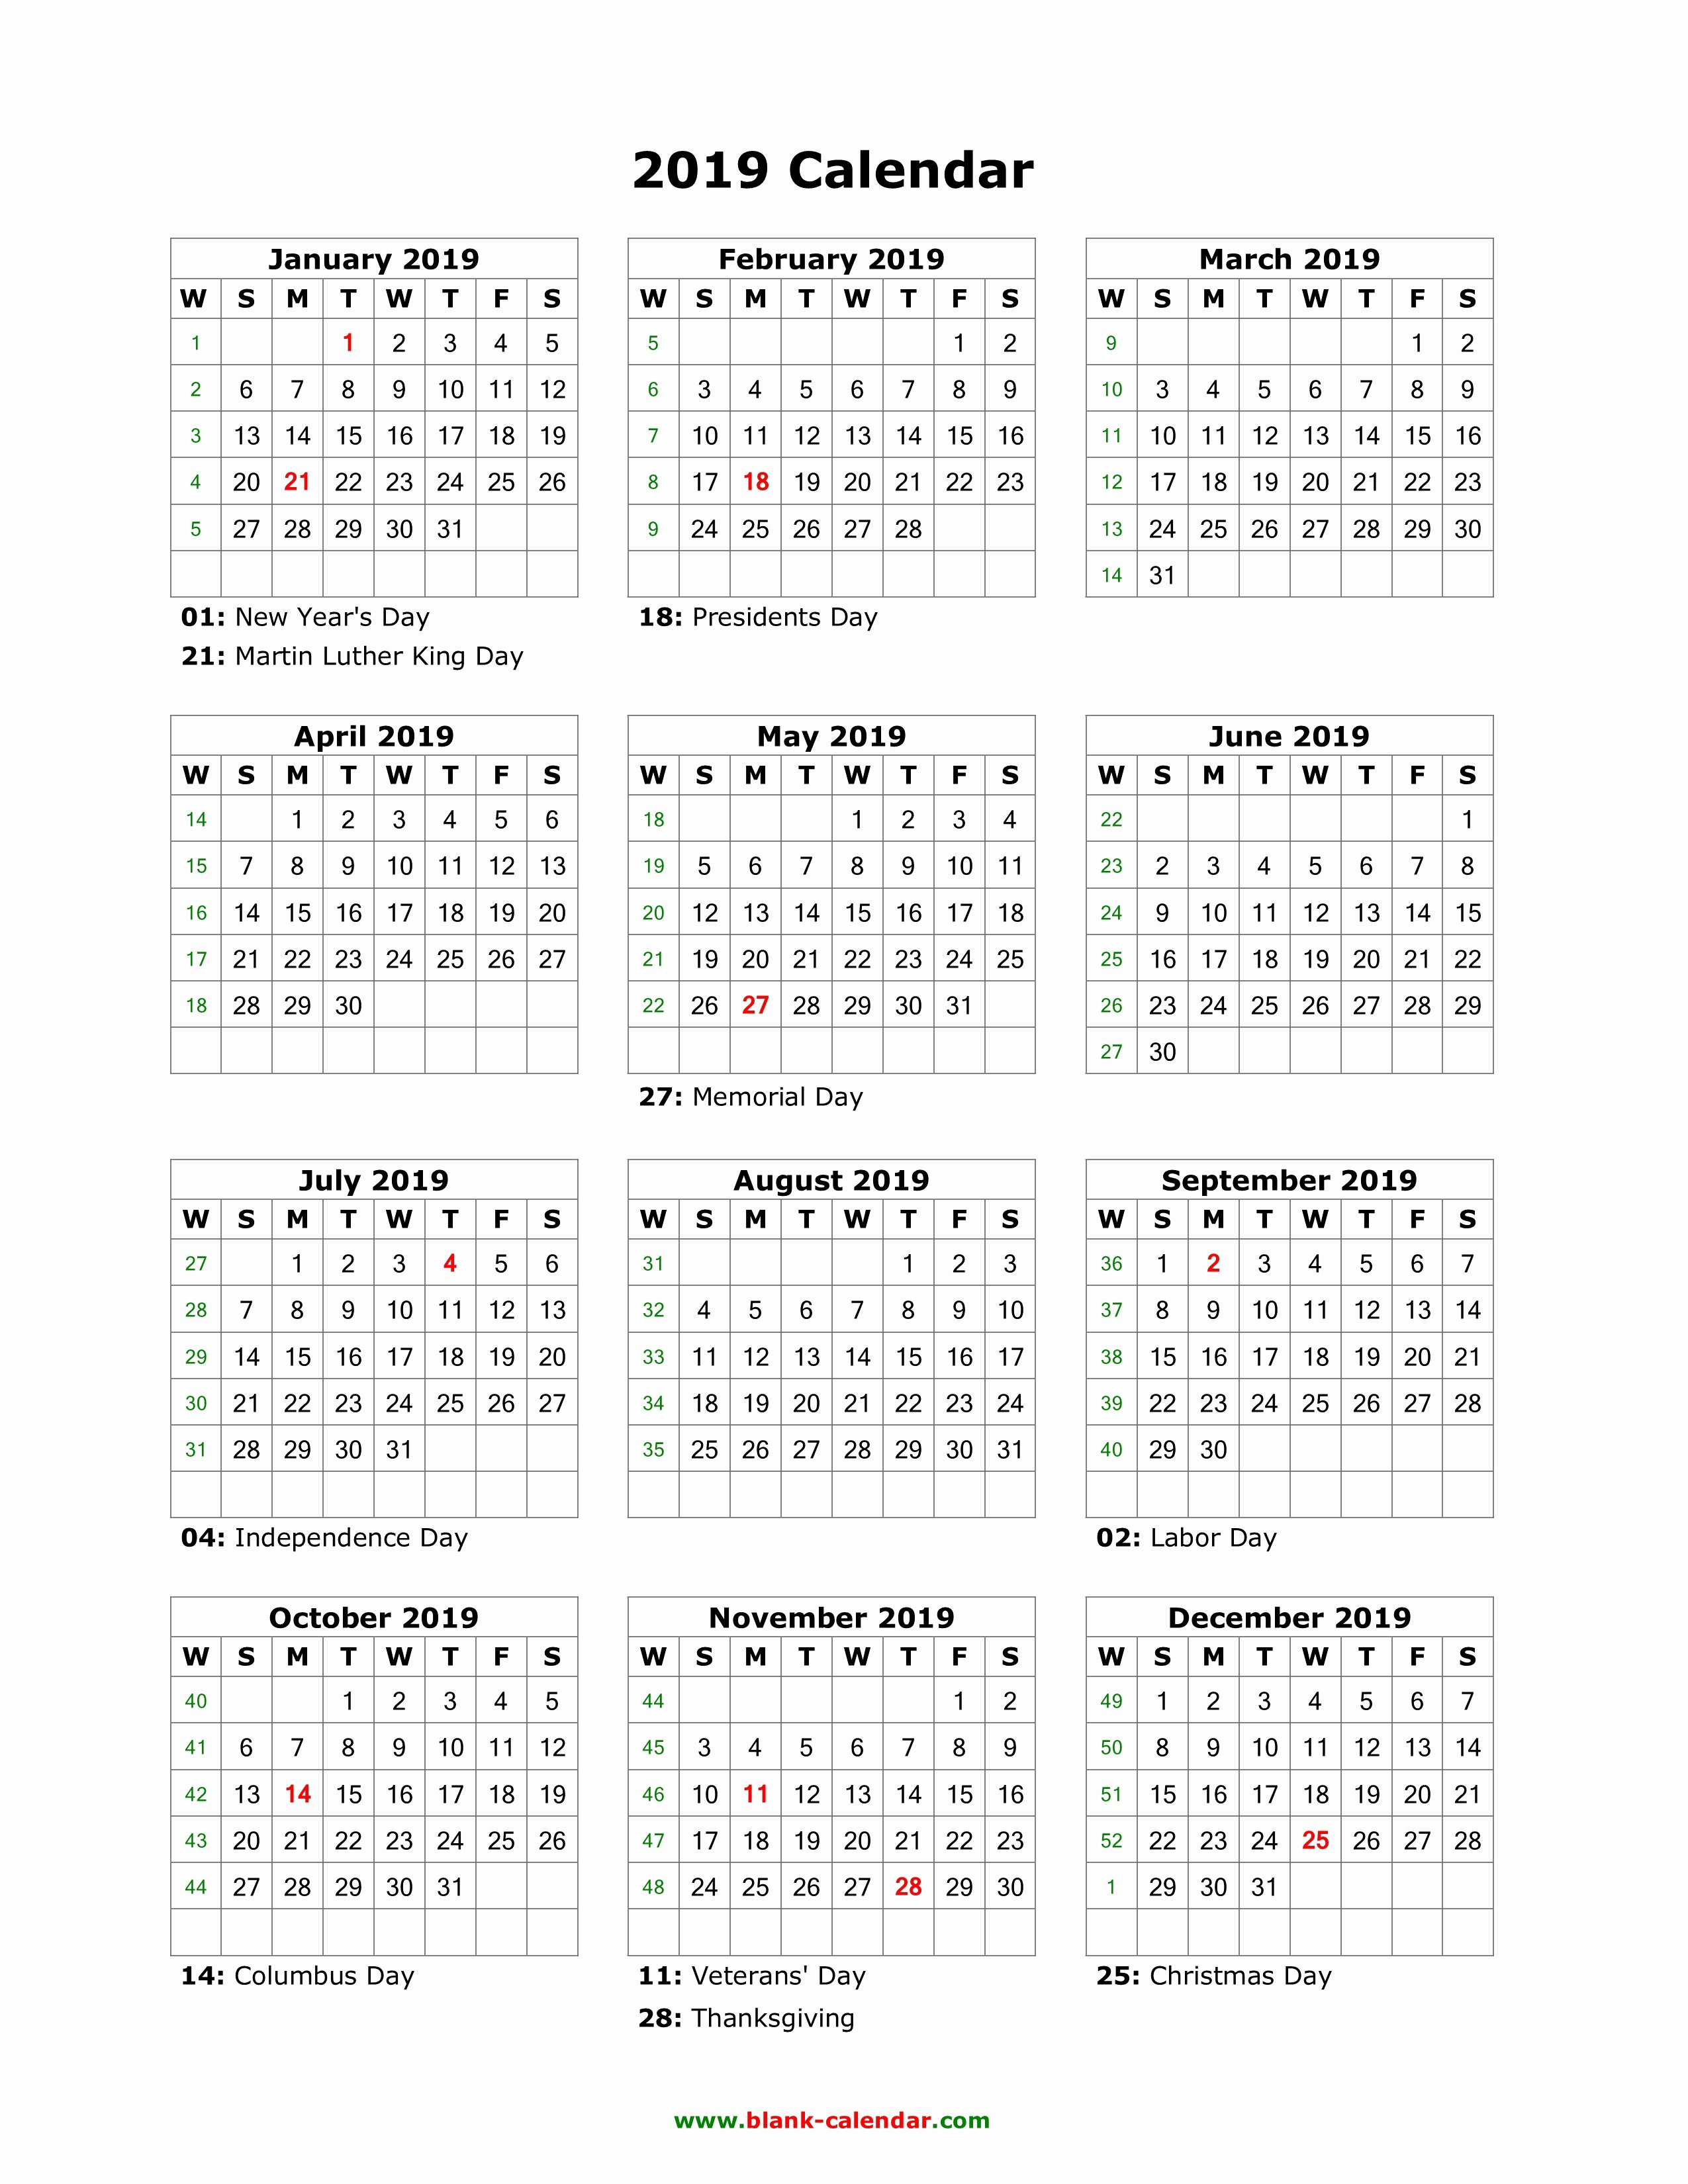 Lovely 31 Design Time And Date Printable Calendar 2019 - Blank Calendar 2019 Time And Date